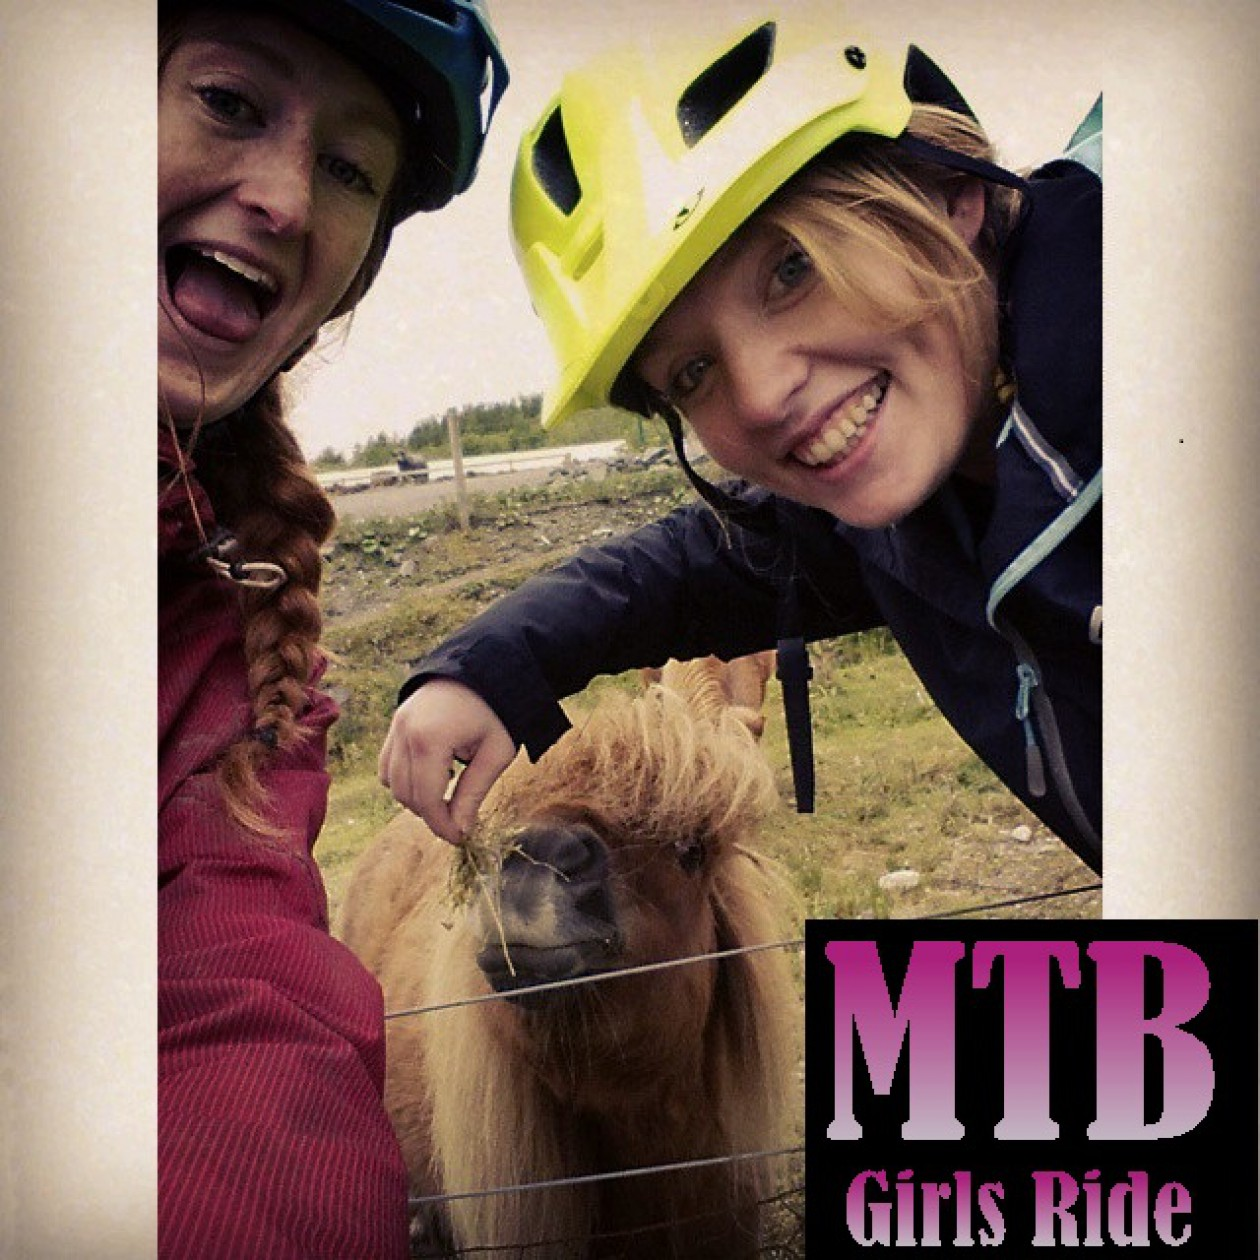 MTB Girls Ride